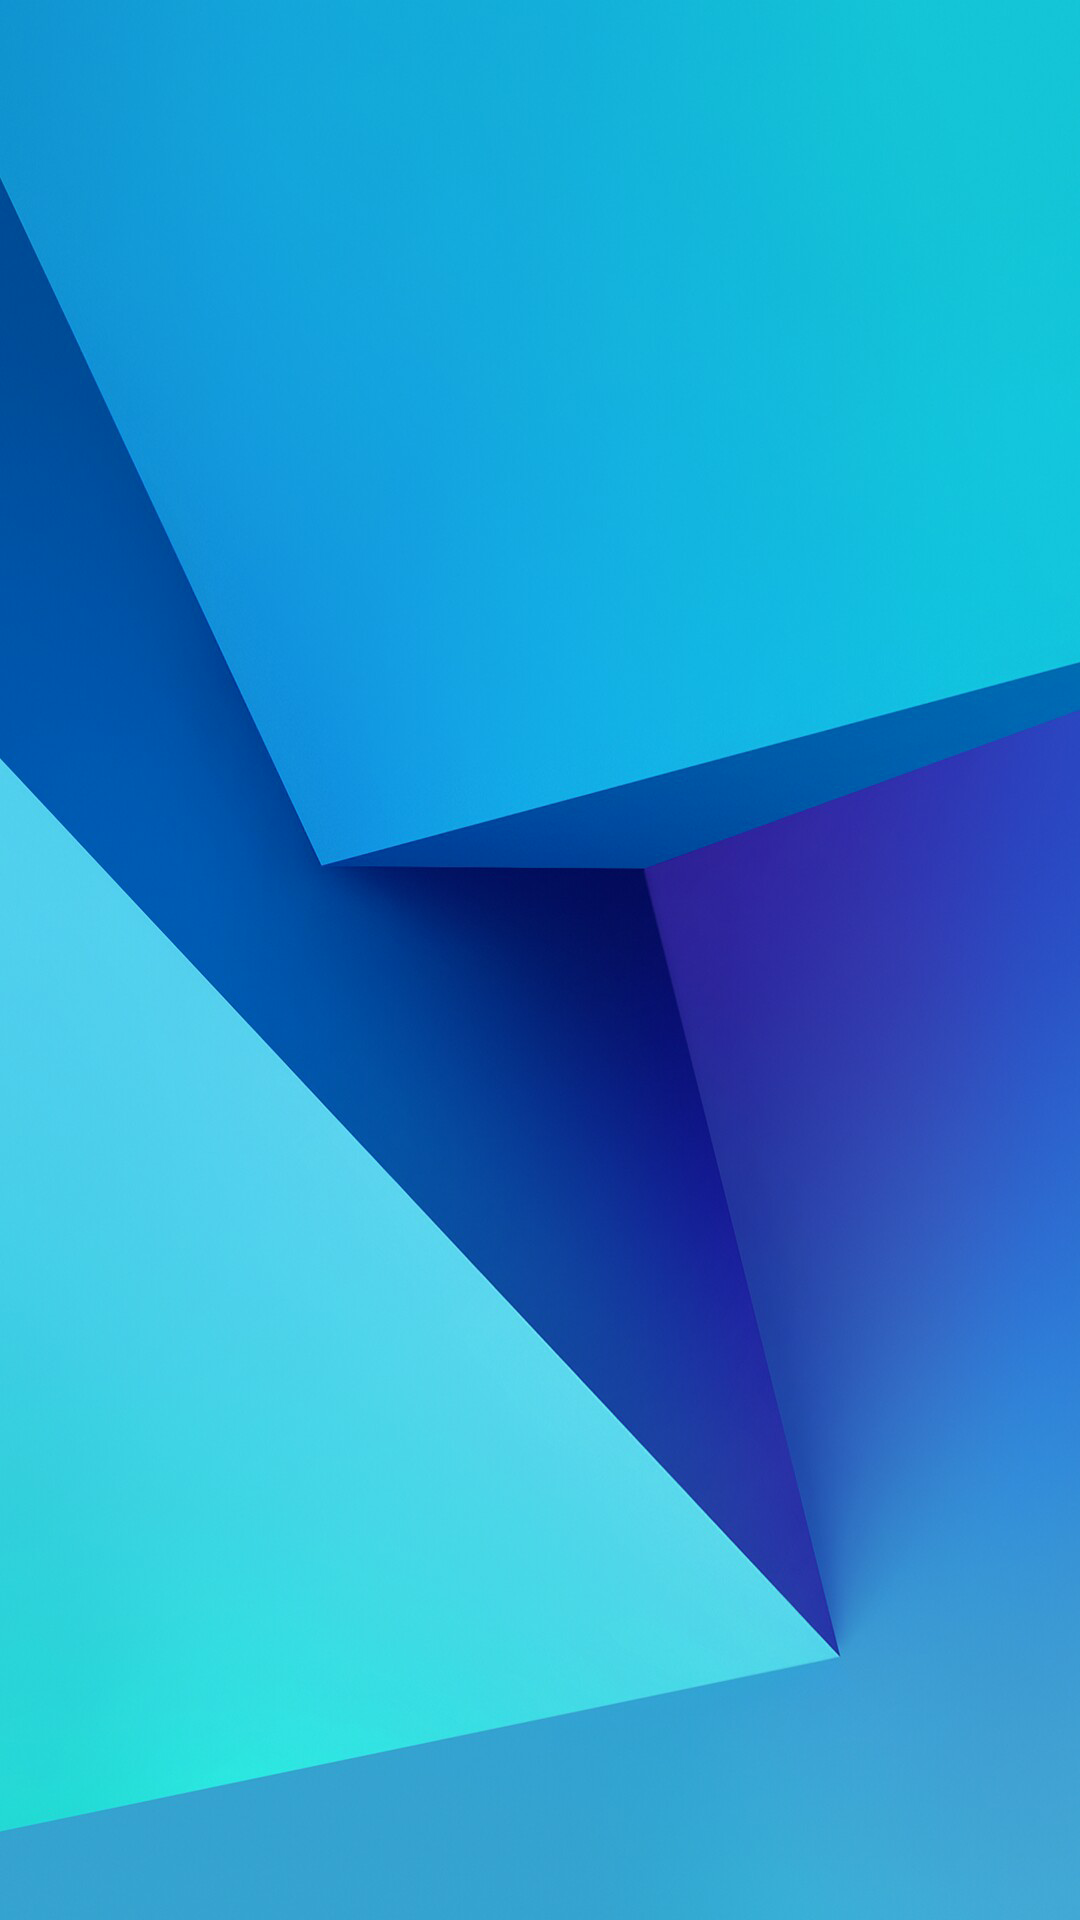 Download The Wallpapers From The Galaxy C9 Pro Sammobile